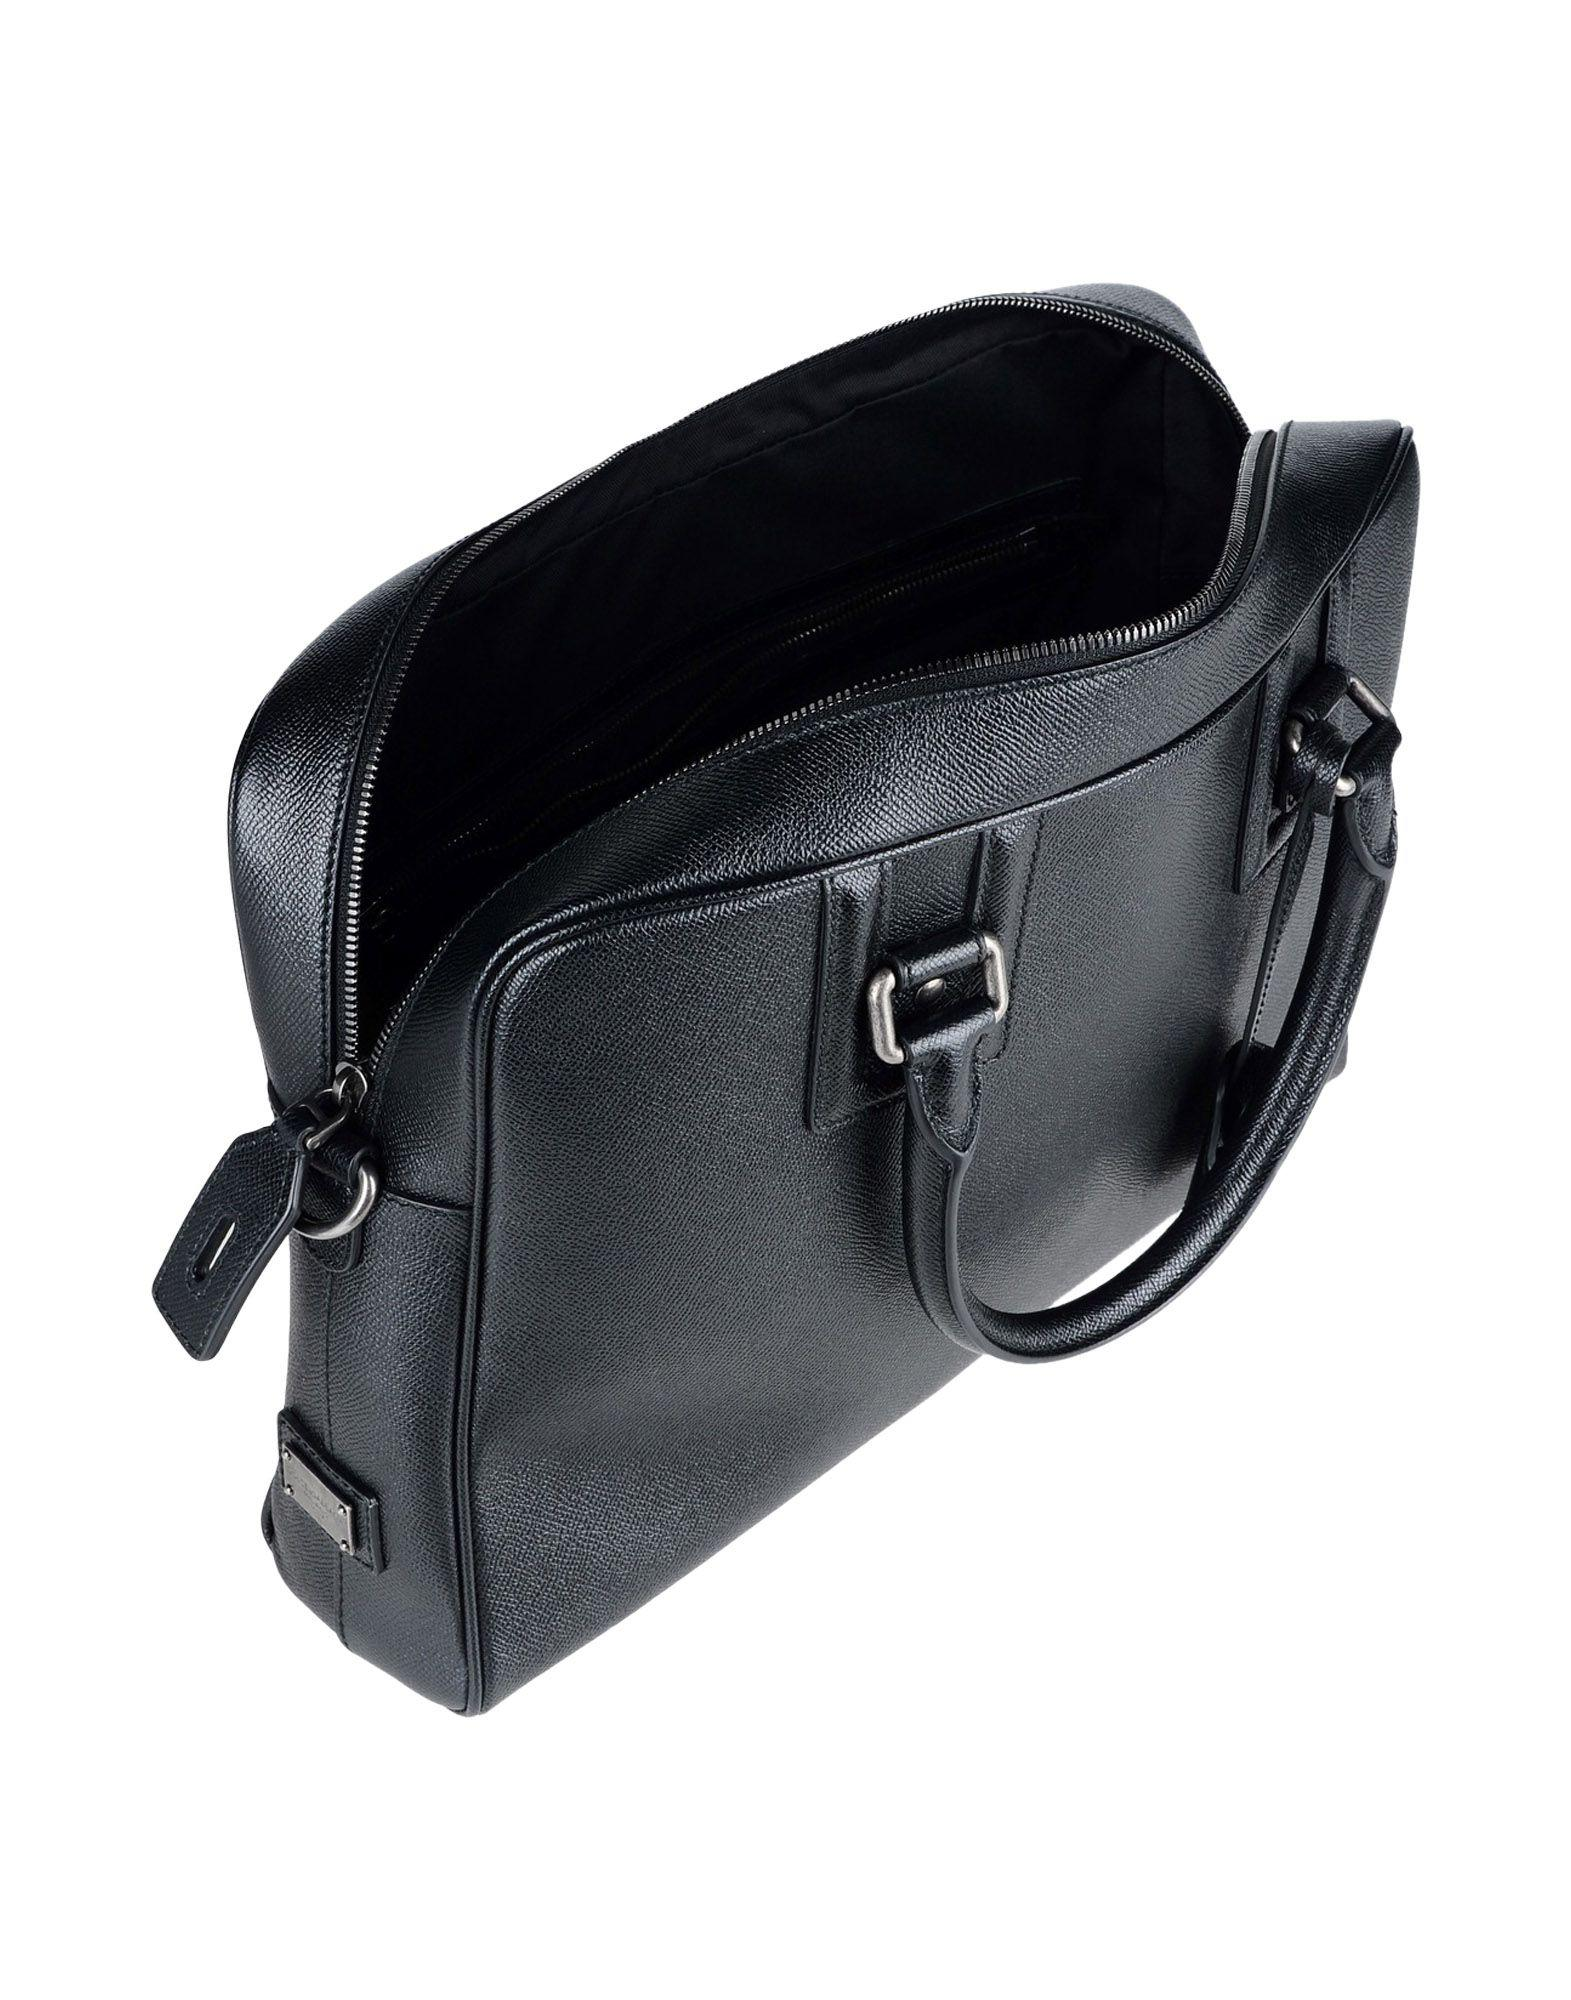 Lyst - Dolce   Gabbana Work Bags in Black for Men 66b4ecad299f7